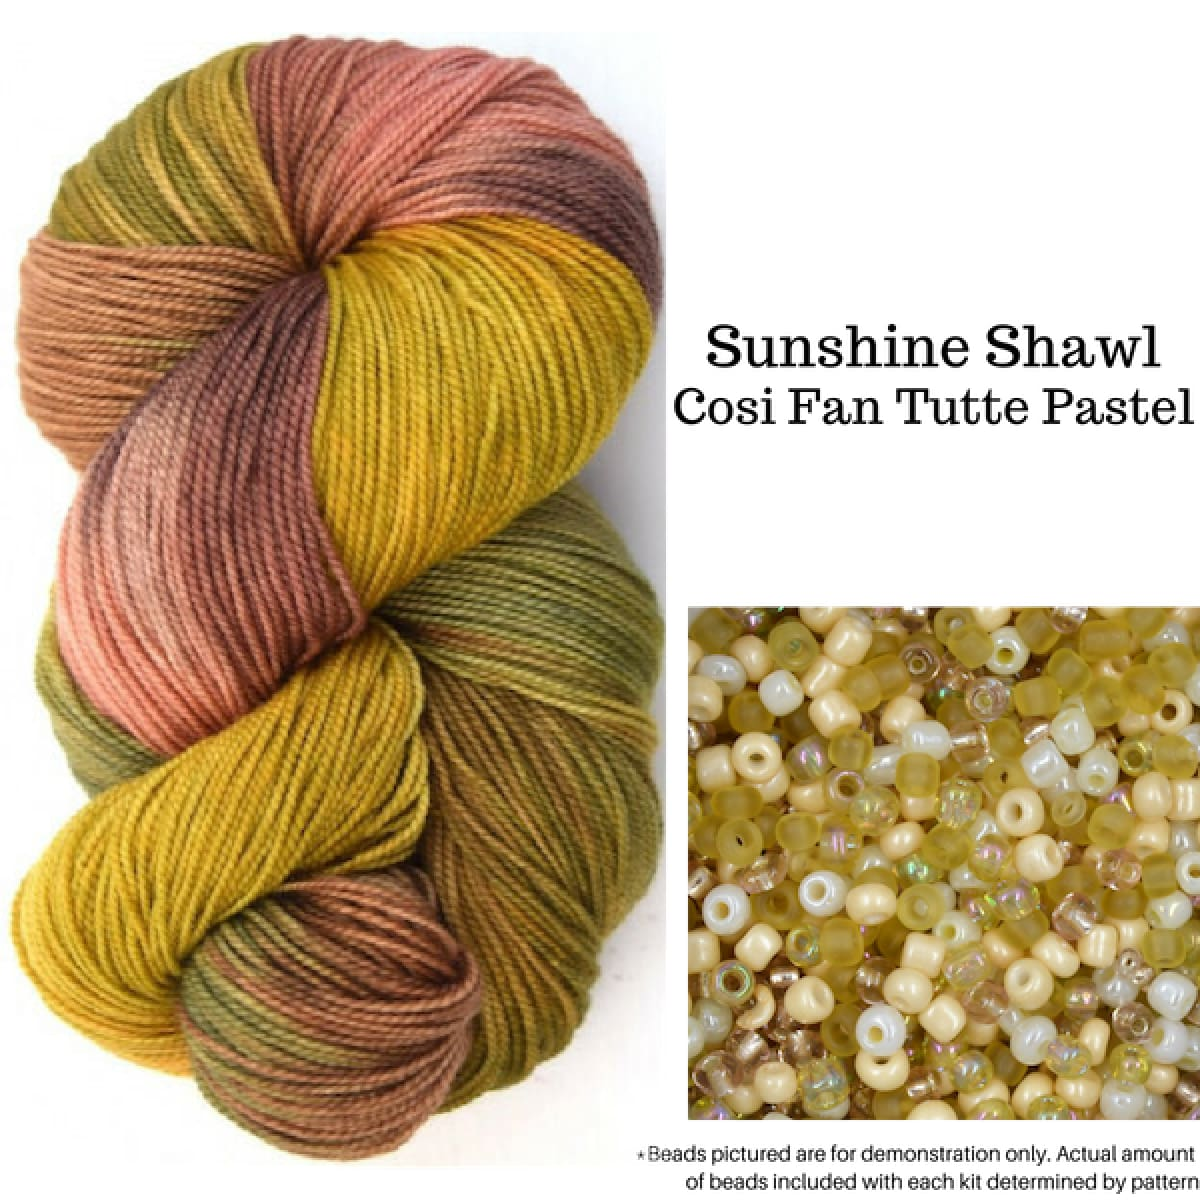 Sunshine Shawl - Cosi Fan Tutte Pastel - Knitting Kit